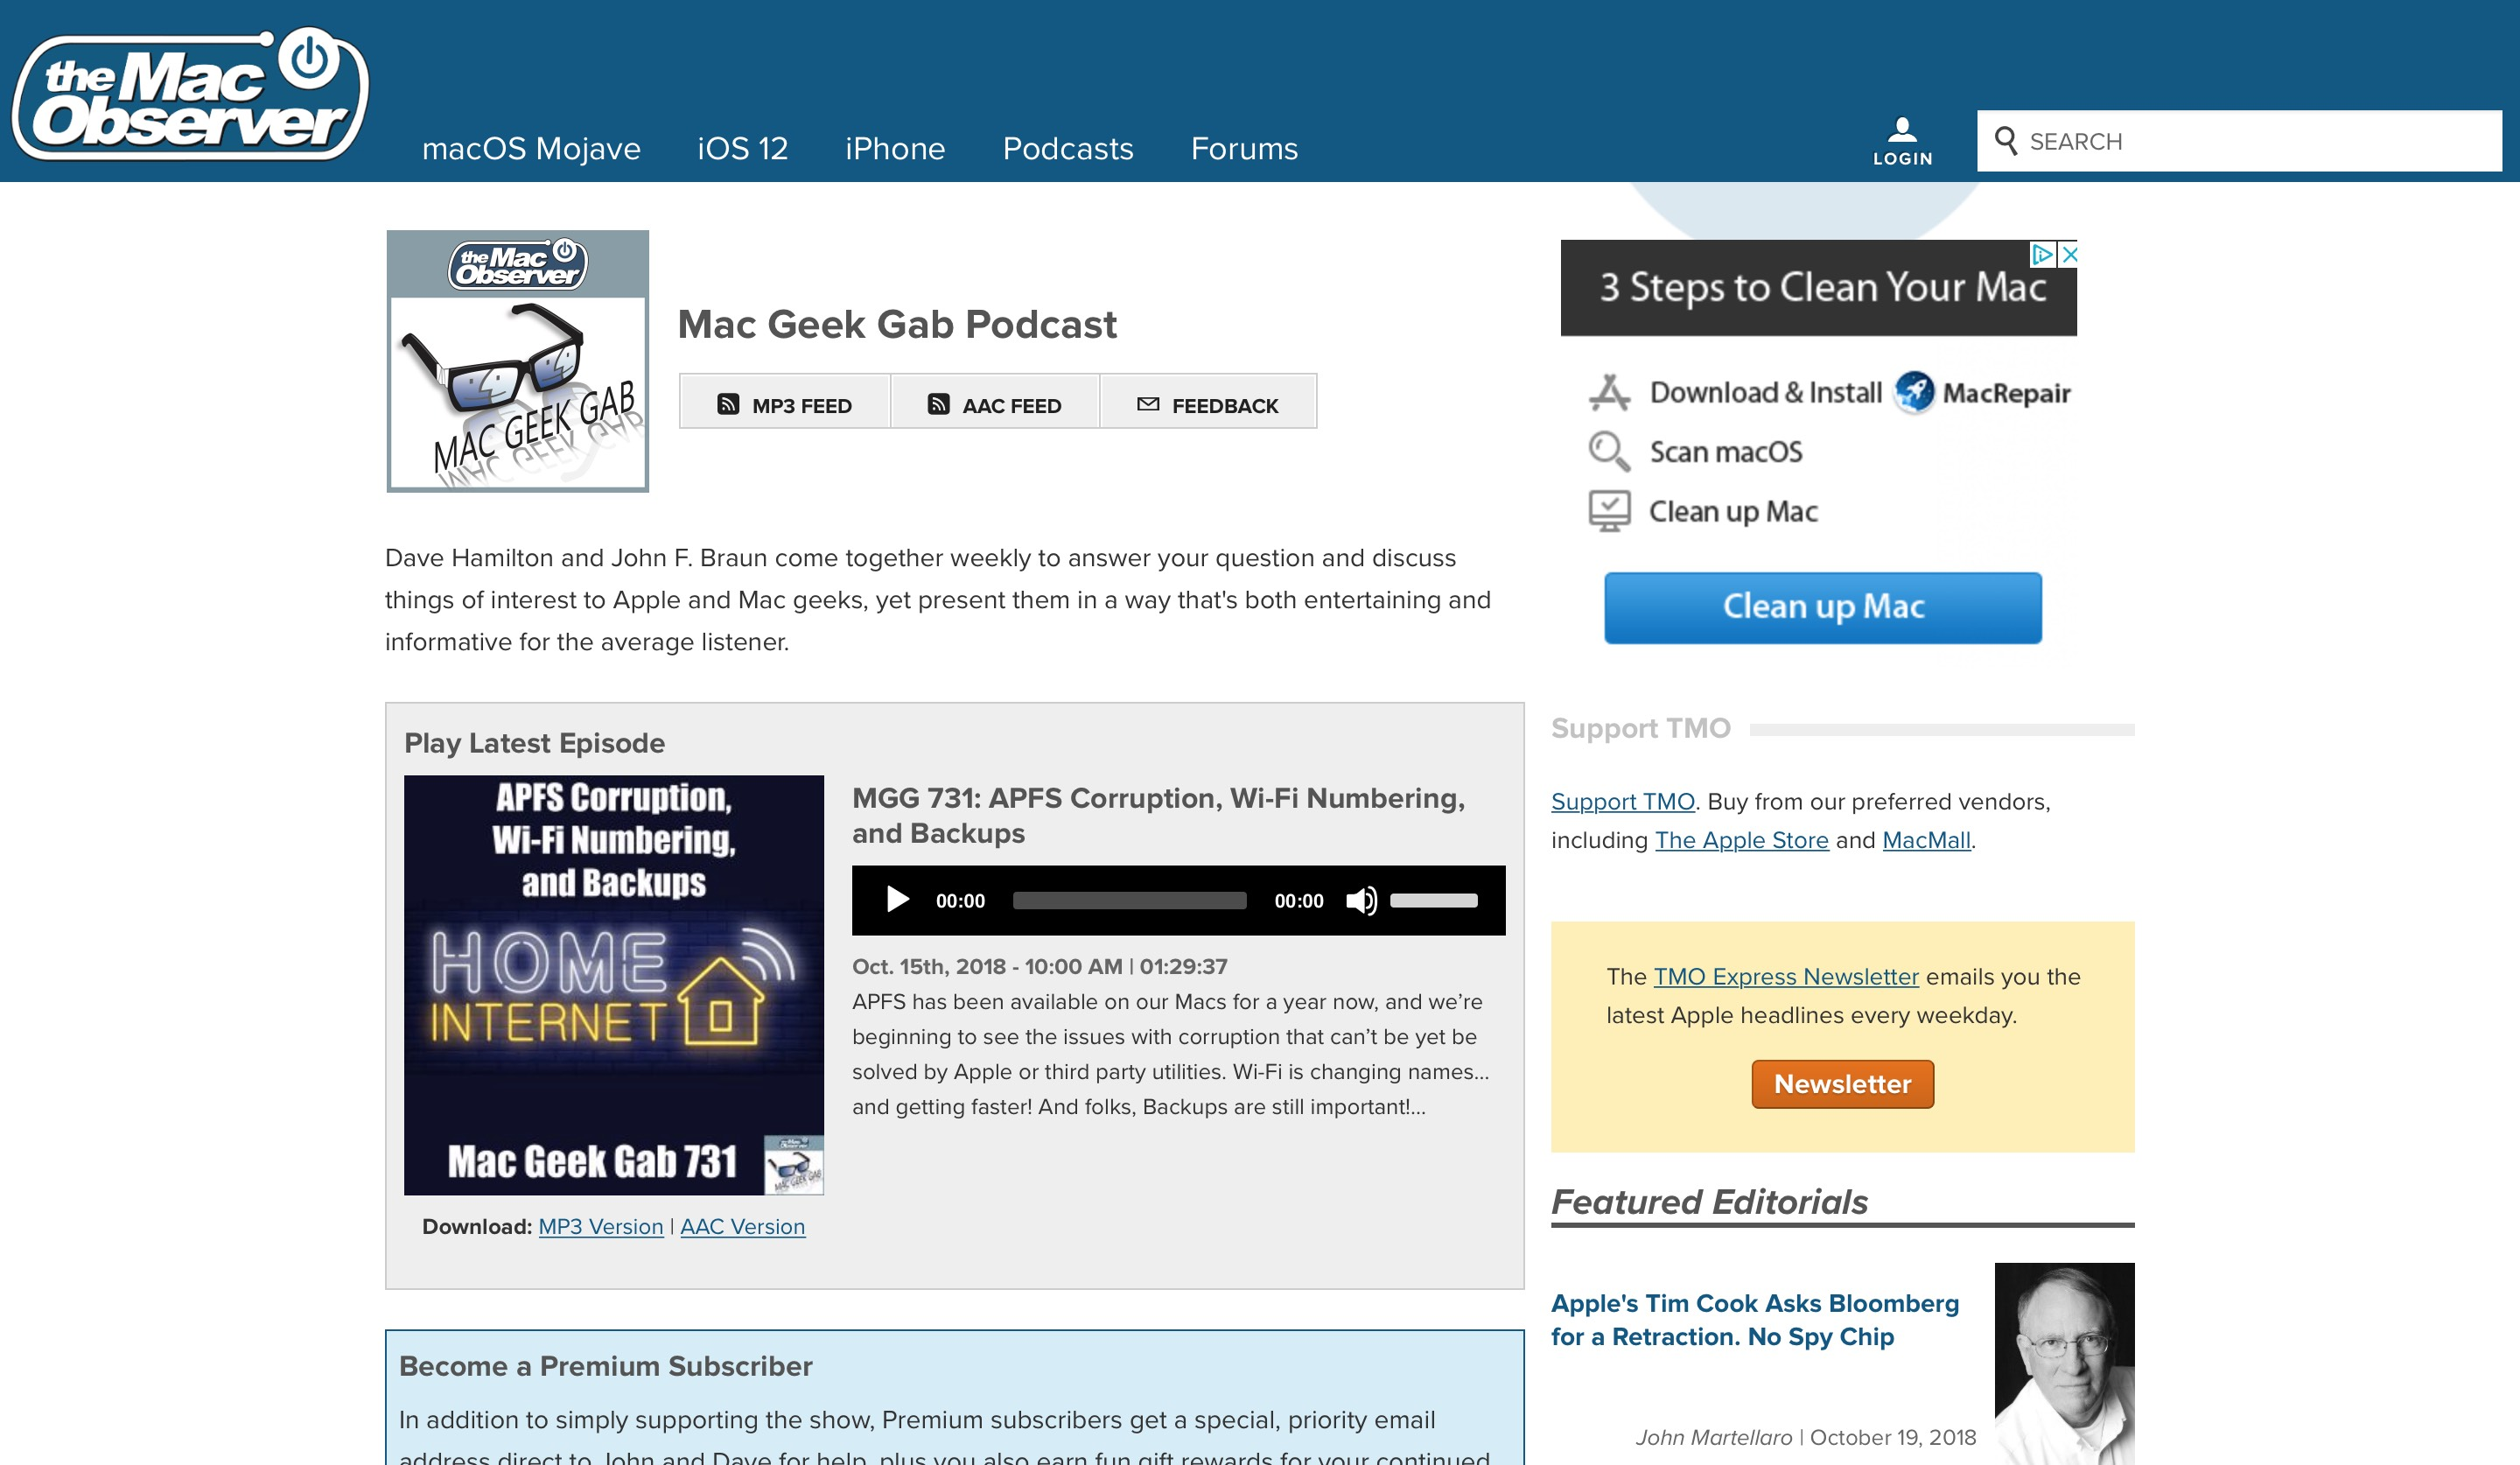 The Mac Observer website podcast page screenshot